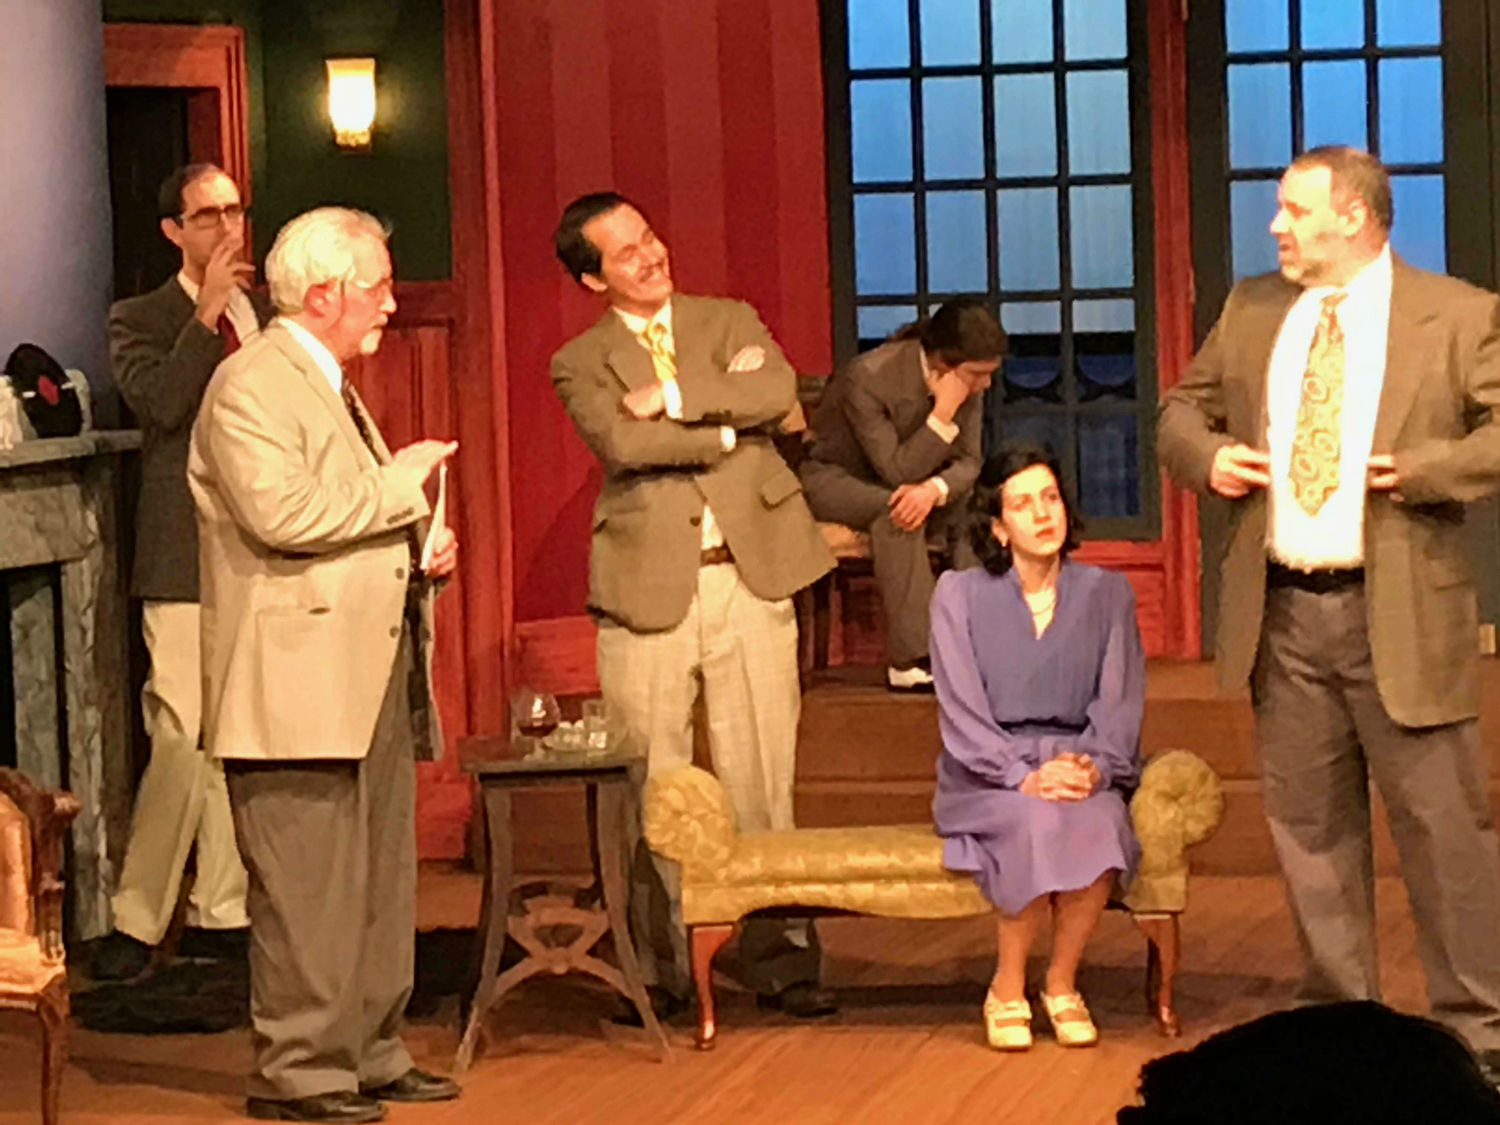 BWW Review: AND THEN THERE WERE NONE Intrigues at Beavercreek Community Theatre